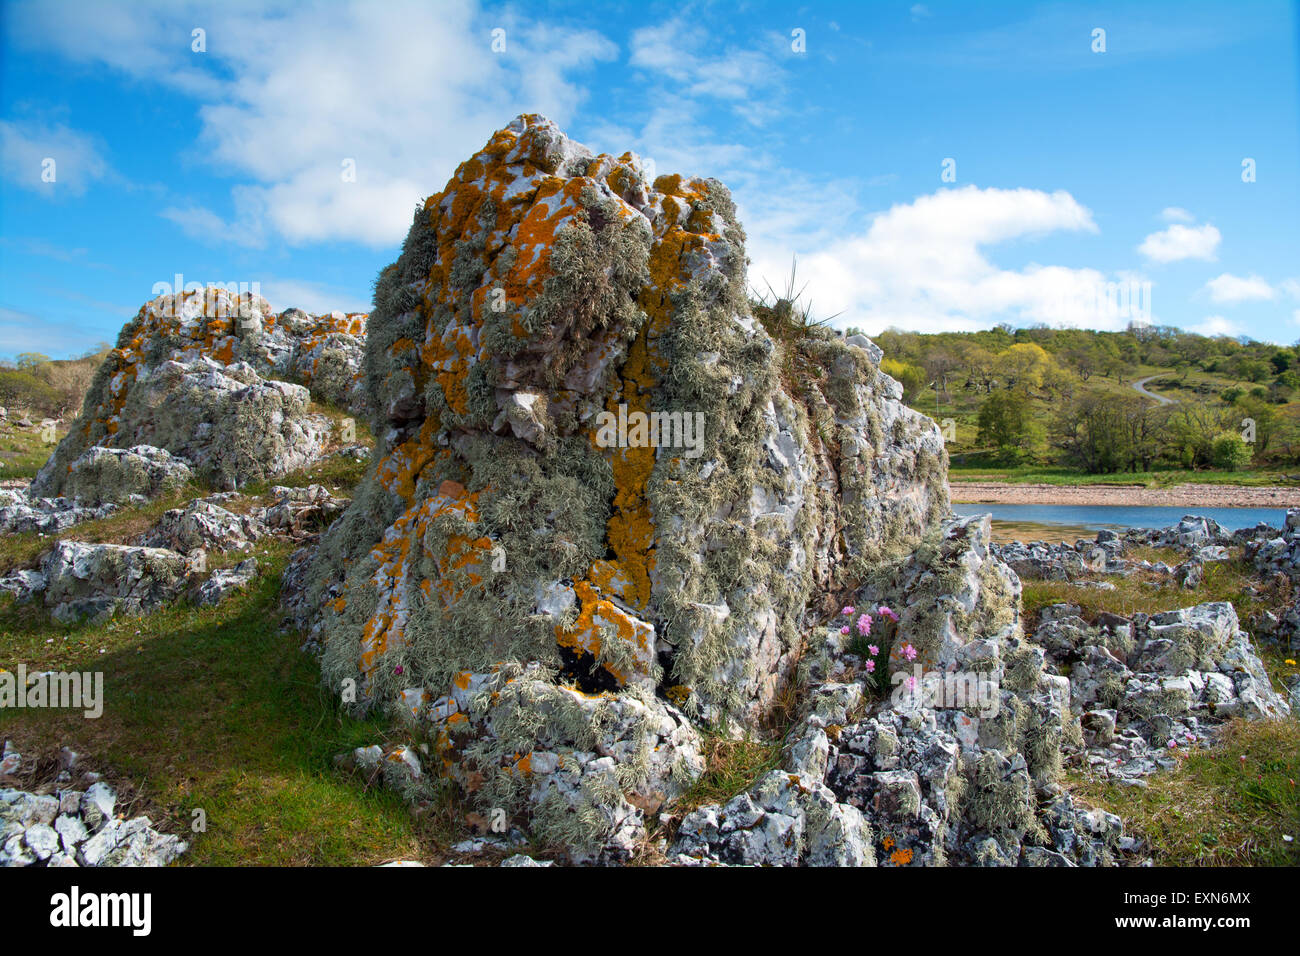 Volcanic rock and Lichen - Stock Image